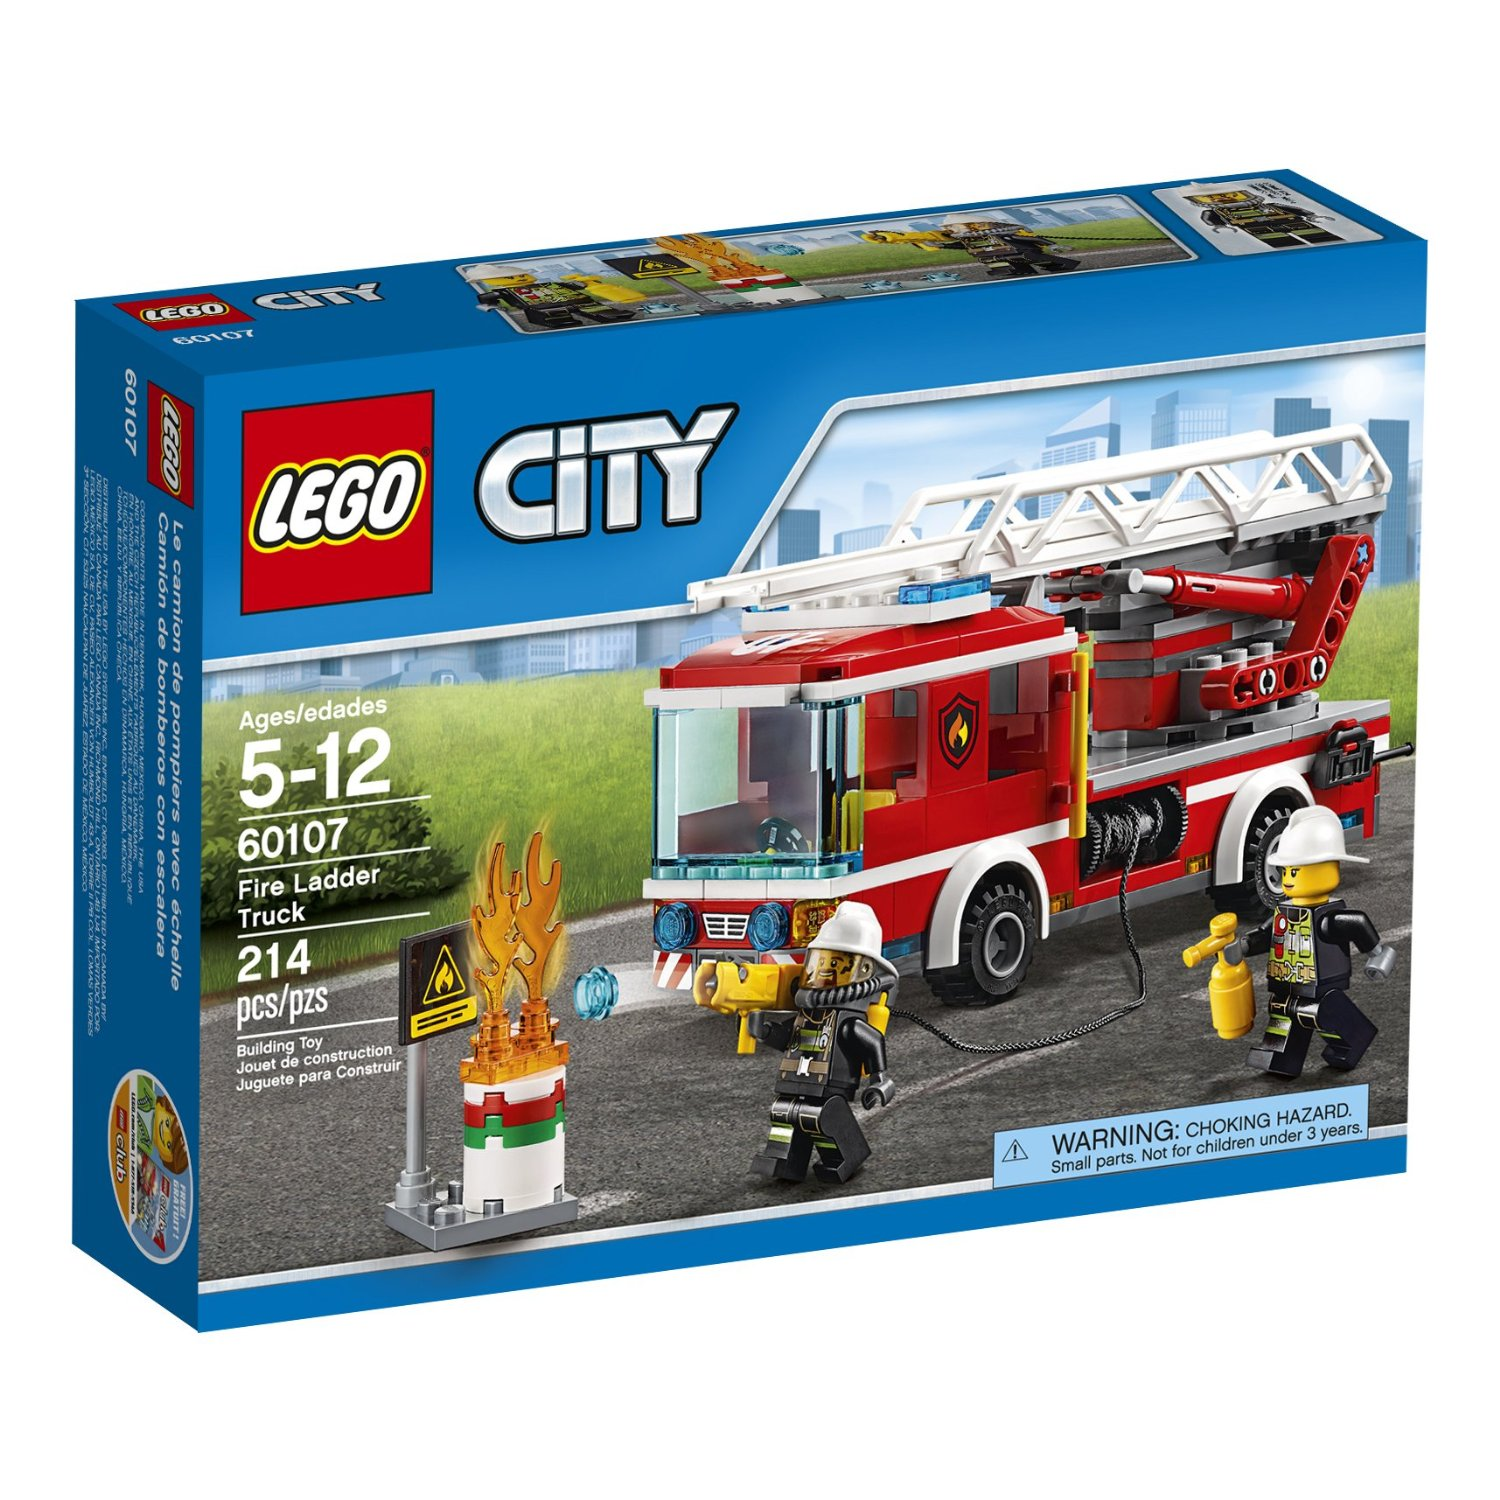 Lego City Fire Ladder Truck Only 18 45 Lowest Price